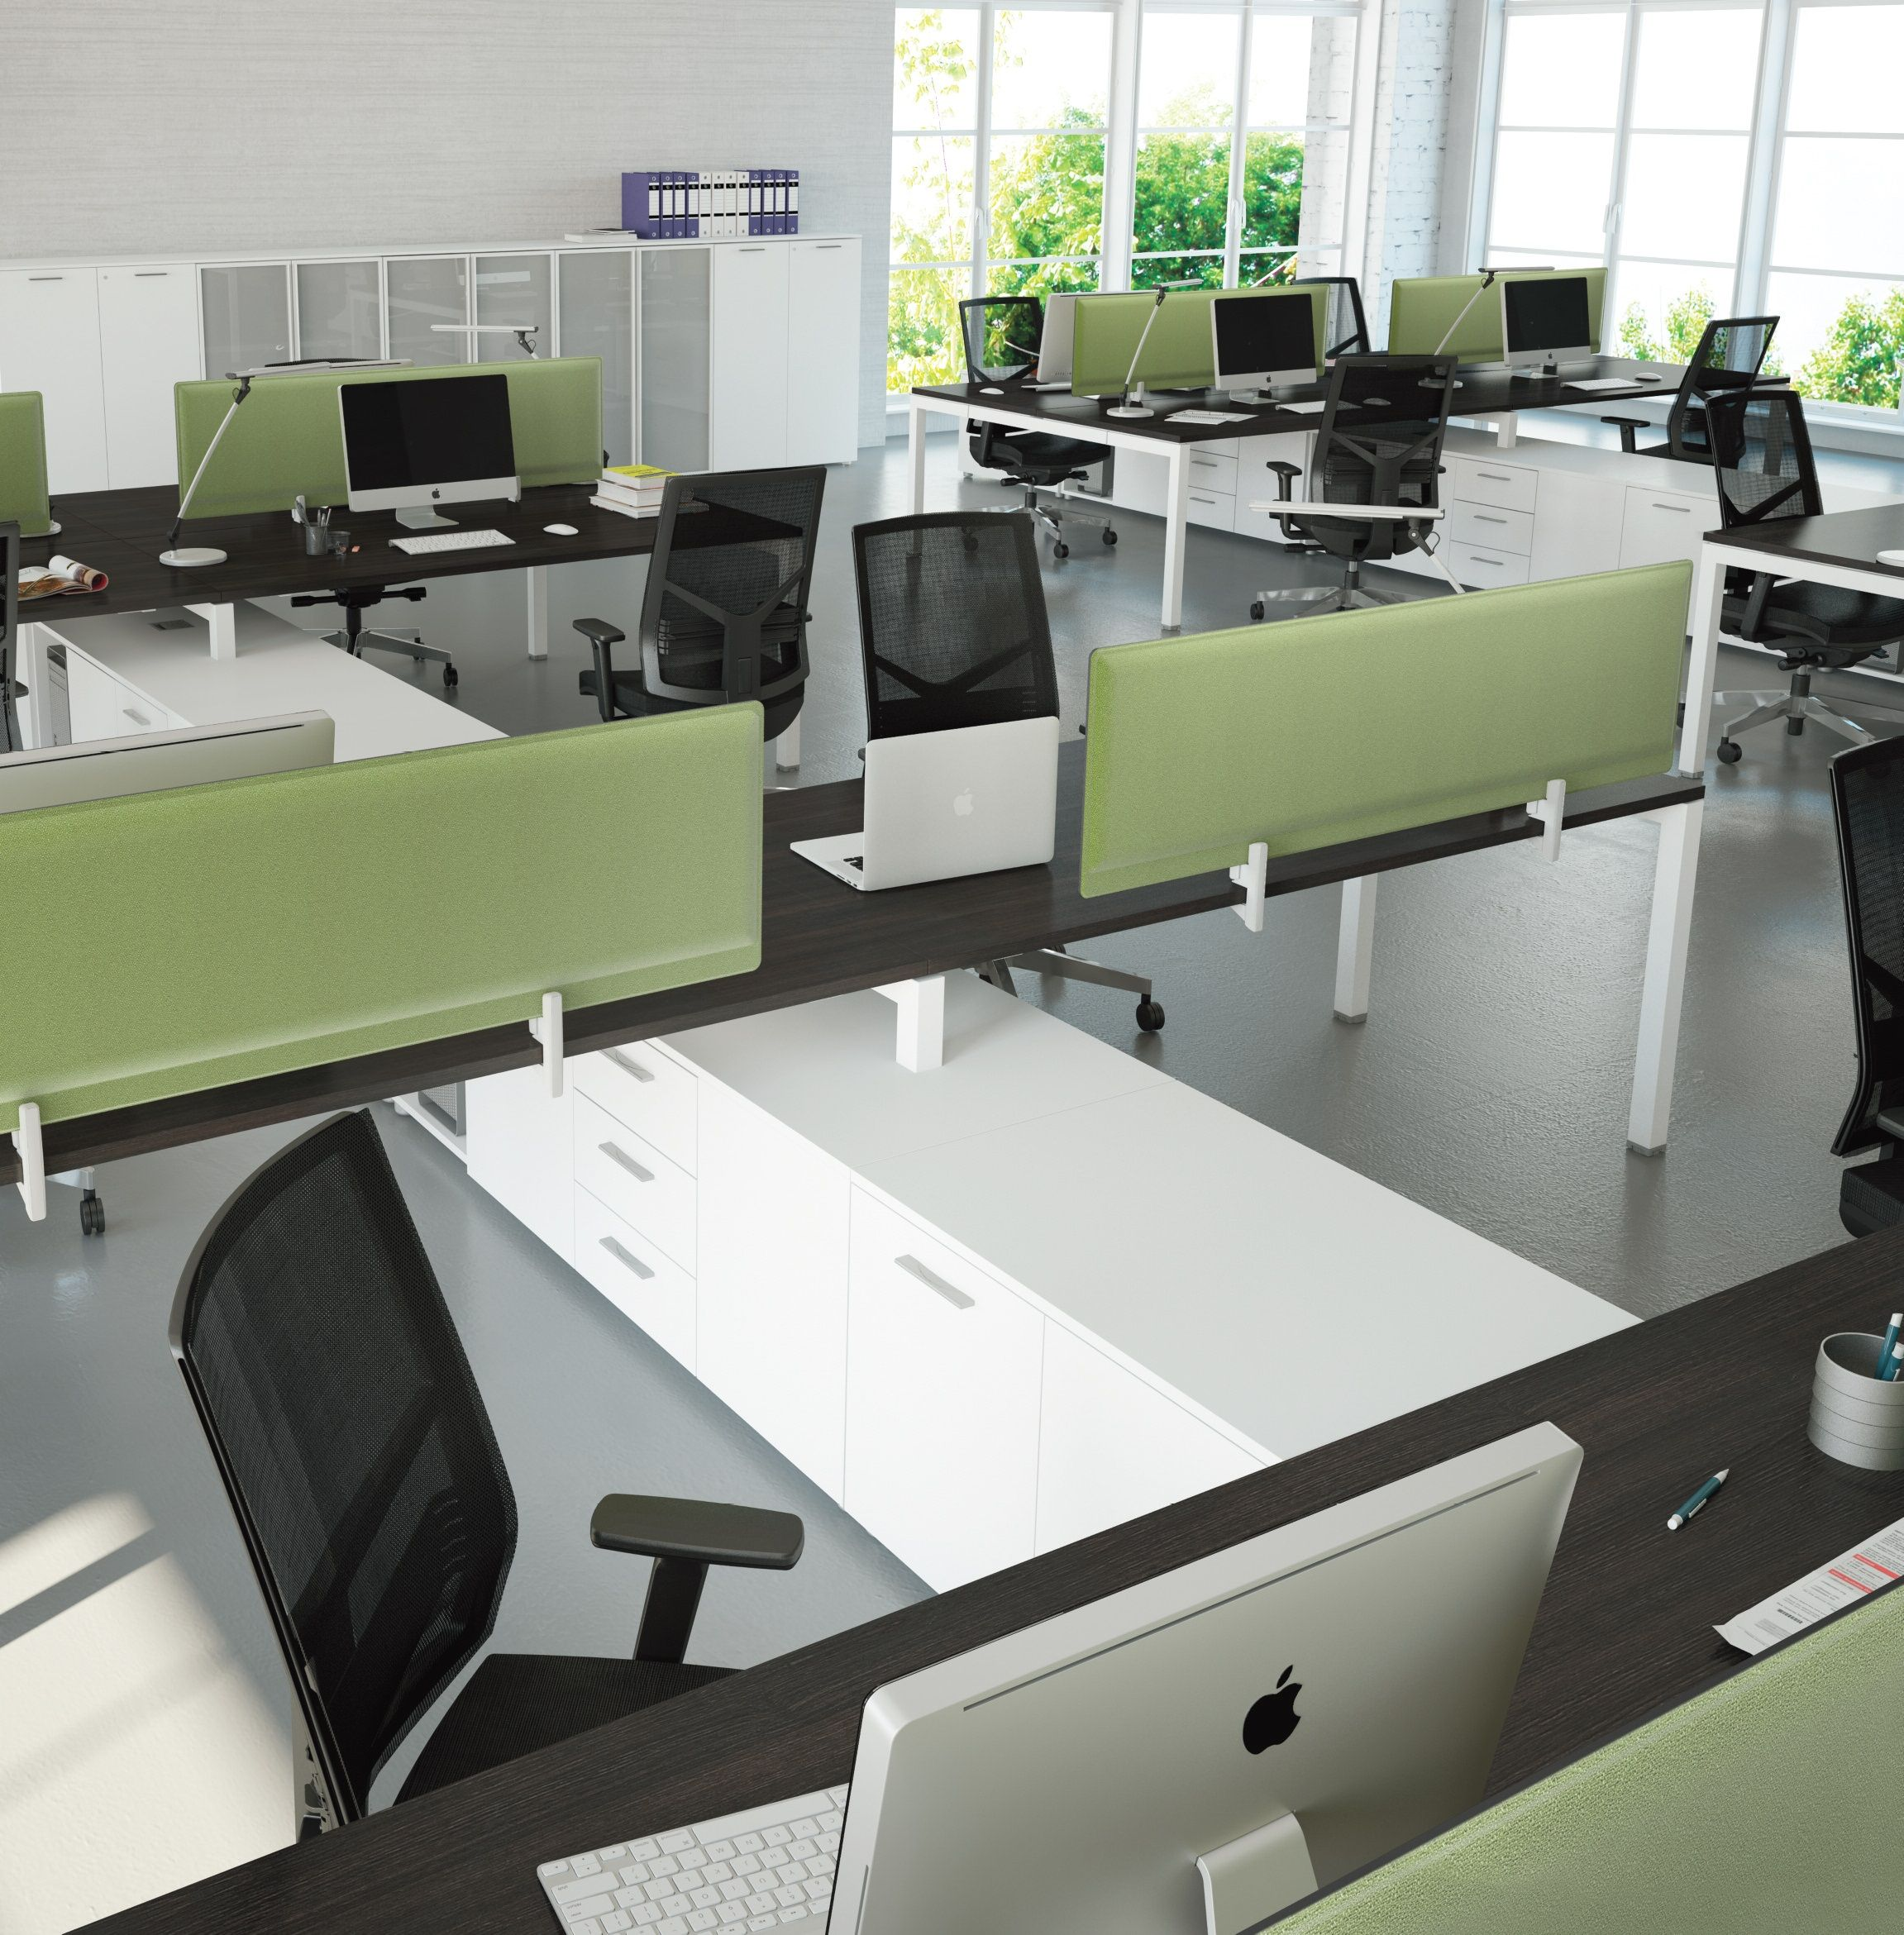 office desk tops. CUBE Linear Workstations With Acoustic Screens And Underdesk Storage. Walnut Desk Tops White Legs Office